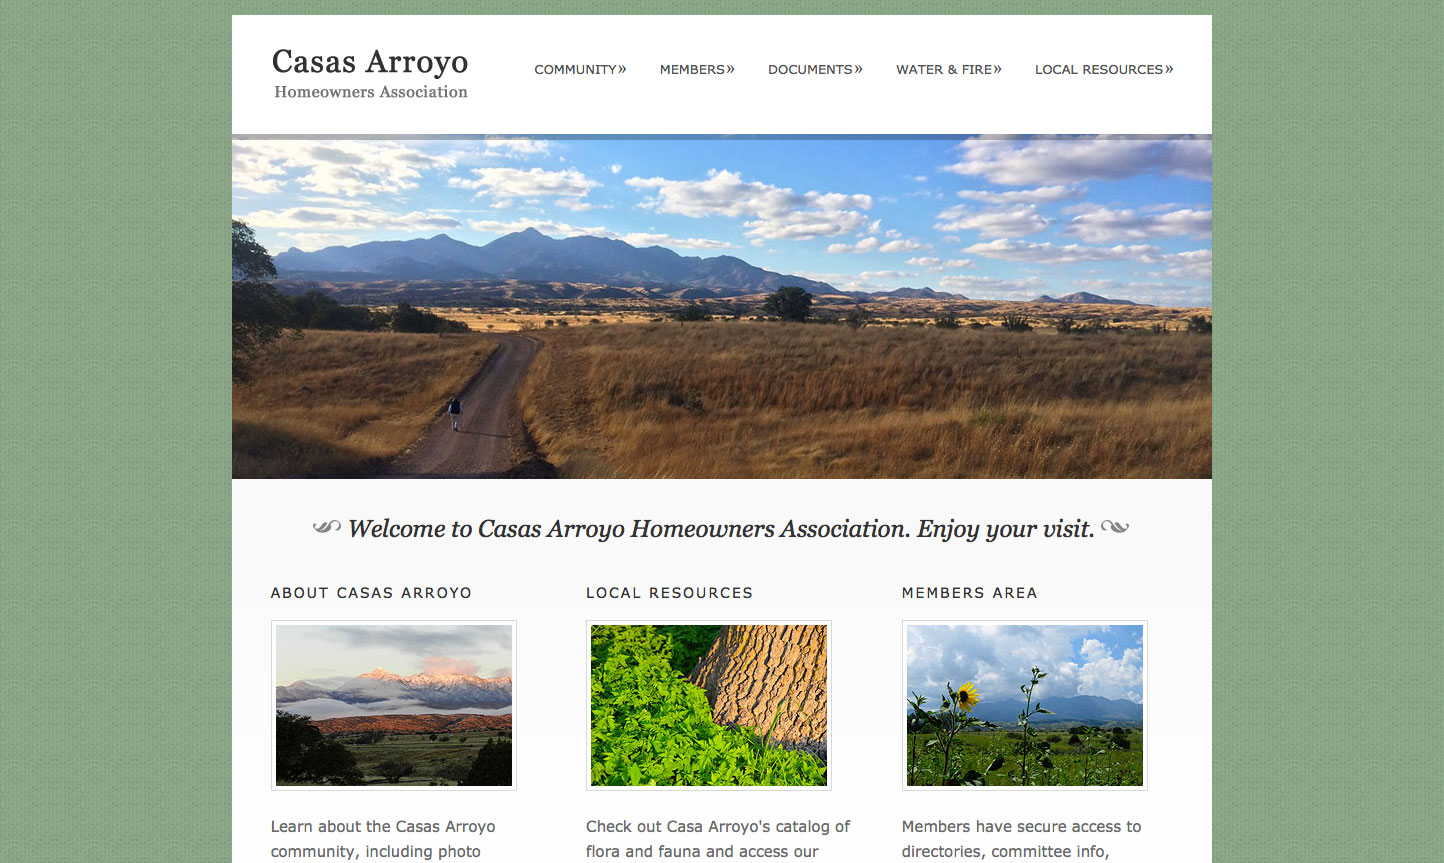 Casas Arroyo Homeowners Association Website